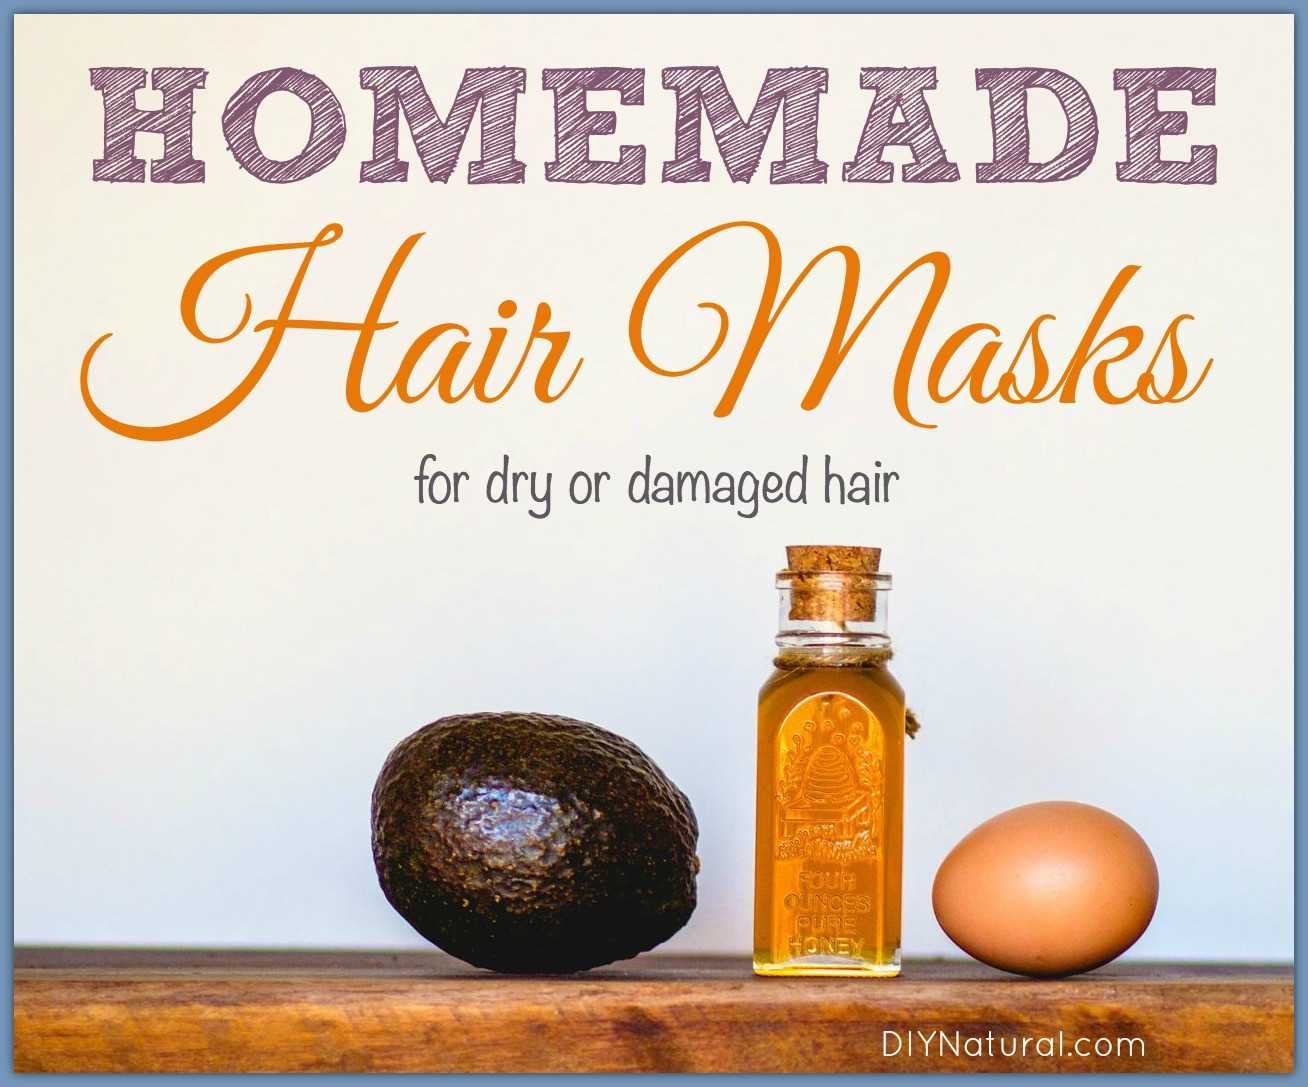 Best ideas about DIY Hair Mask For Dry Hair . Save or Pin Homemade Hair Mask Several Recipes for Dry or Damaged Hair Now.